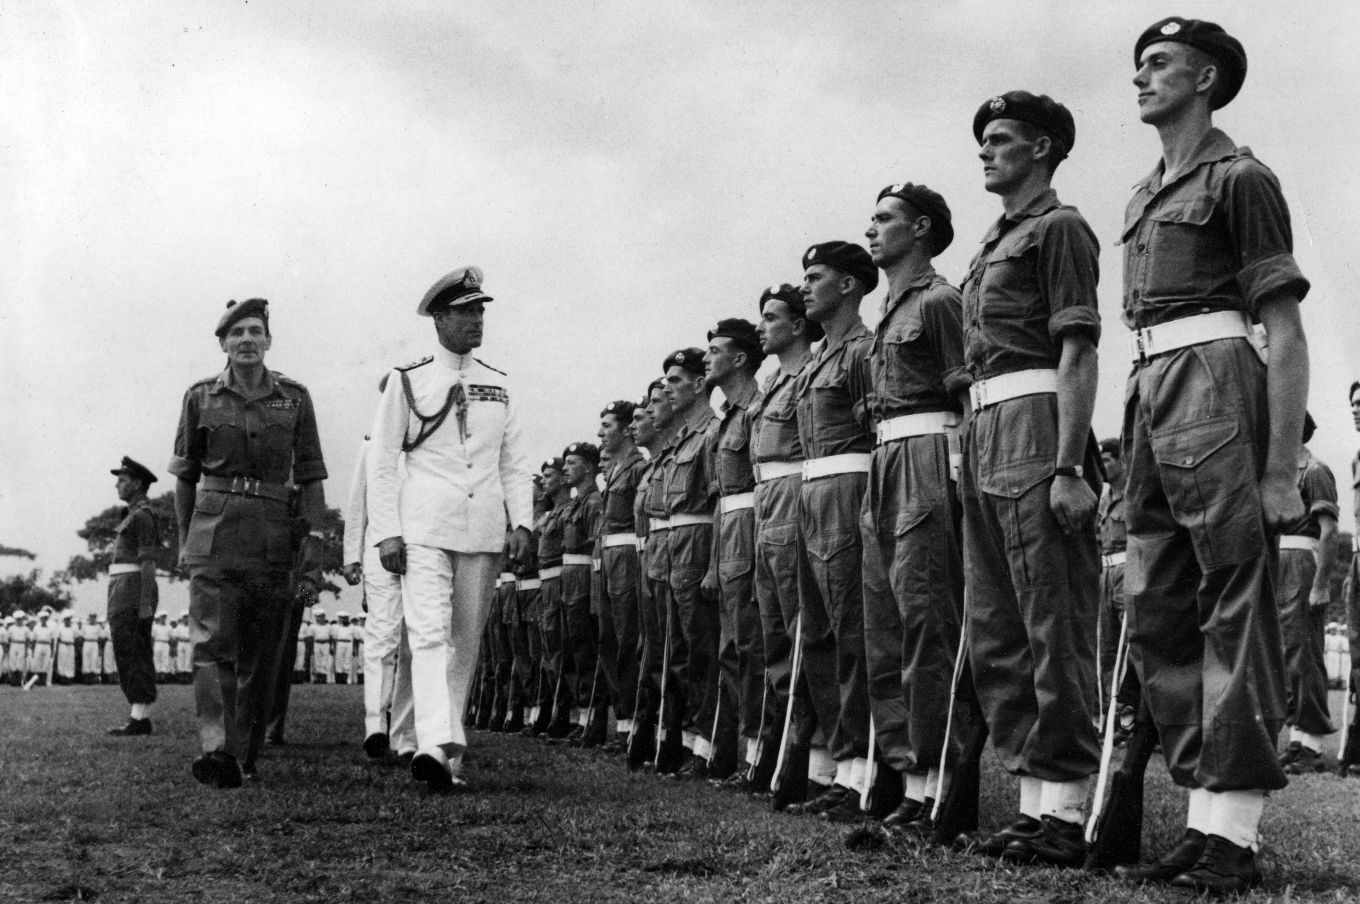 Admiral Lord Louis Mountbatten inspecting men of 2896 Squadron of the RAF Regiment outside the Municipal Buildings in Singapore prior to the signing of the Japanese surrender document